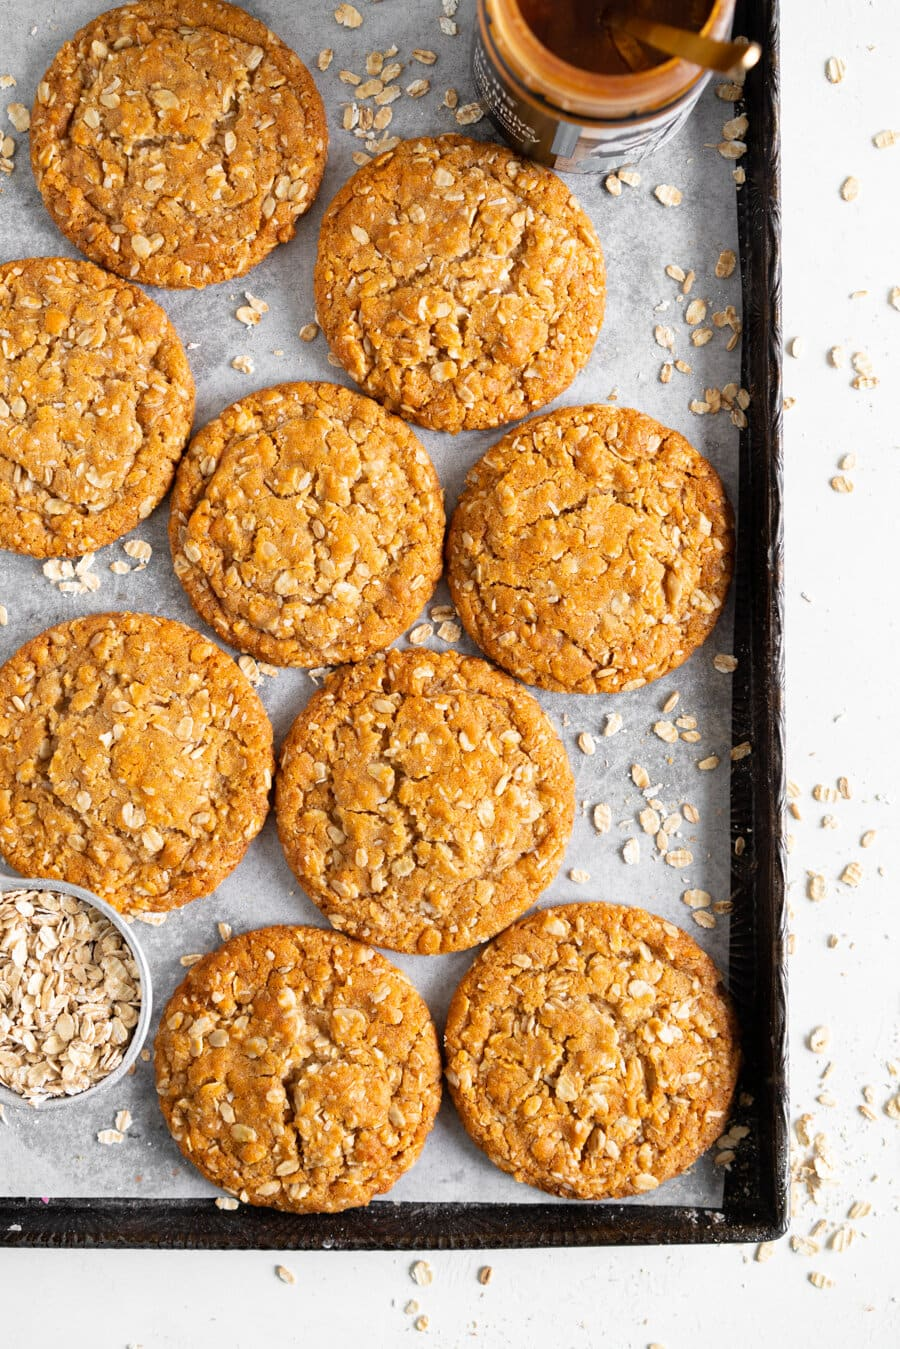 Brown Butter Anzac Biscuits - these traditional Anzac biscuits are chewy and oaty, and are made with brown butter and honey for a perfect depth of flavour. This is a quick Anzac biscuit recipe, and is perfectly soft and chewy.